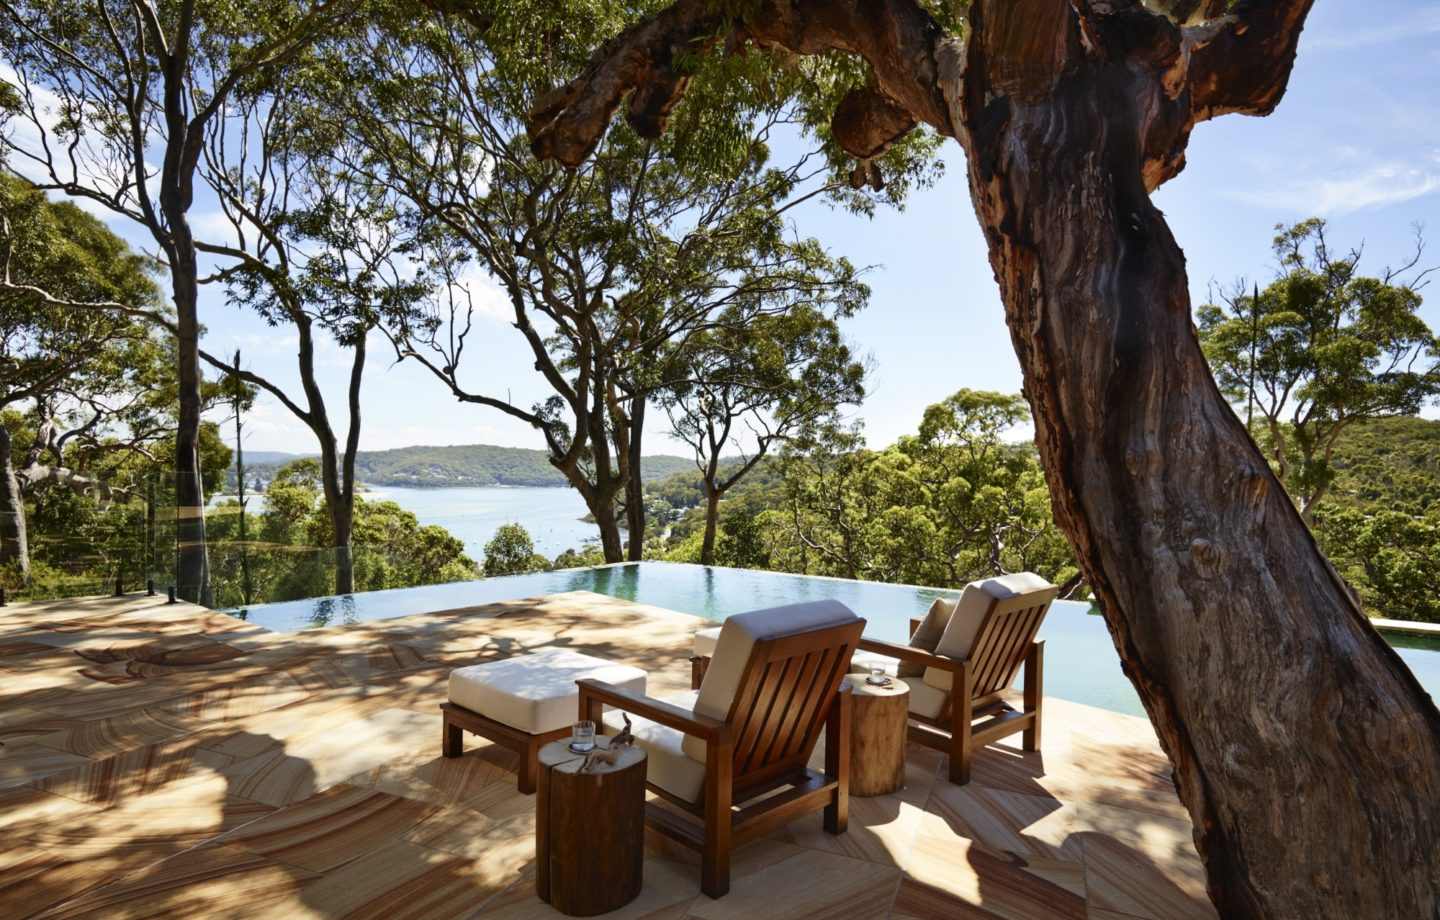 WIN THE ULTIMATE STAY AT PRETTY BEACH HOUSE